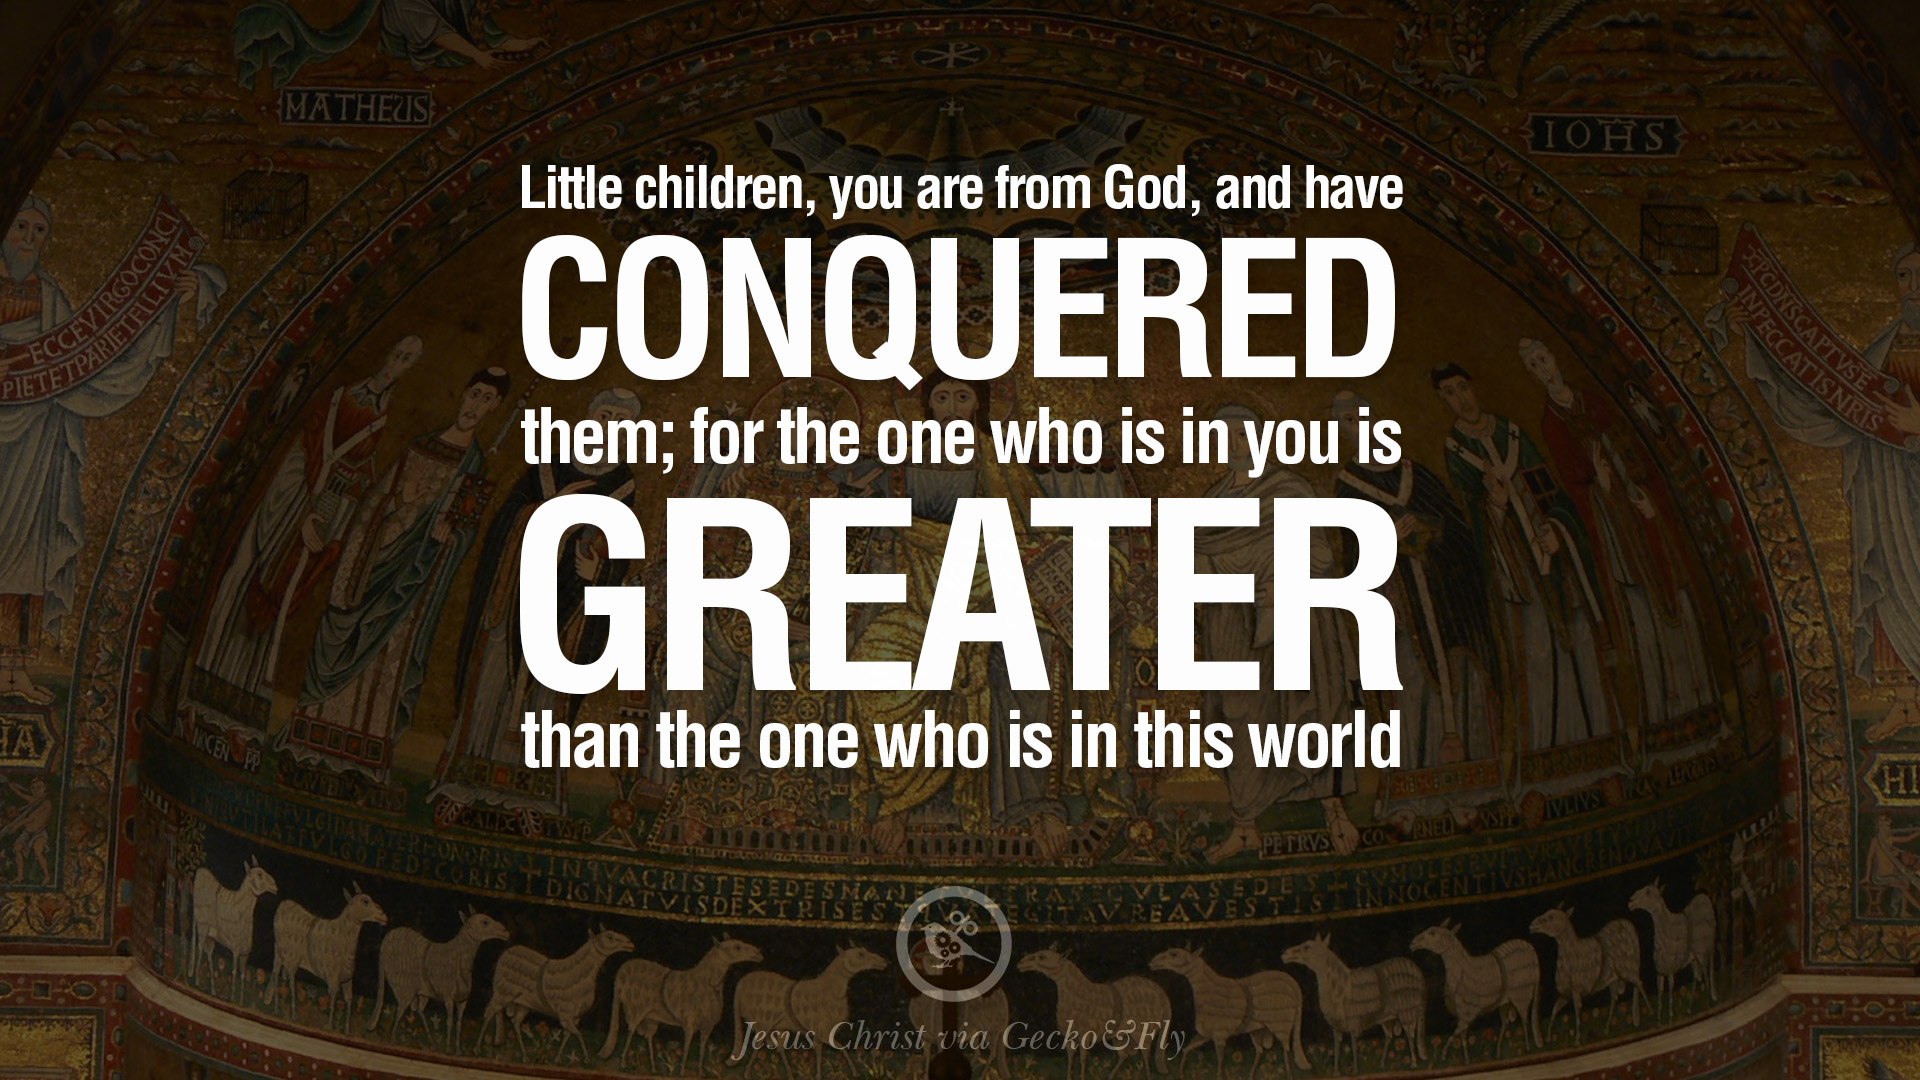 Catholic Bible Quotes About Life: Catholic Biblical Quotes On Life. QuotesGram